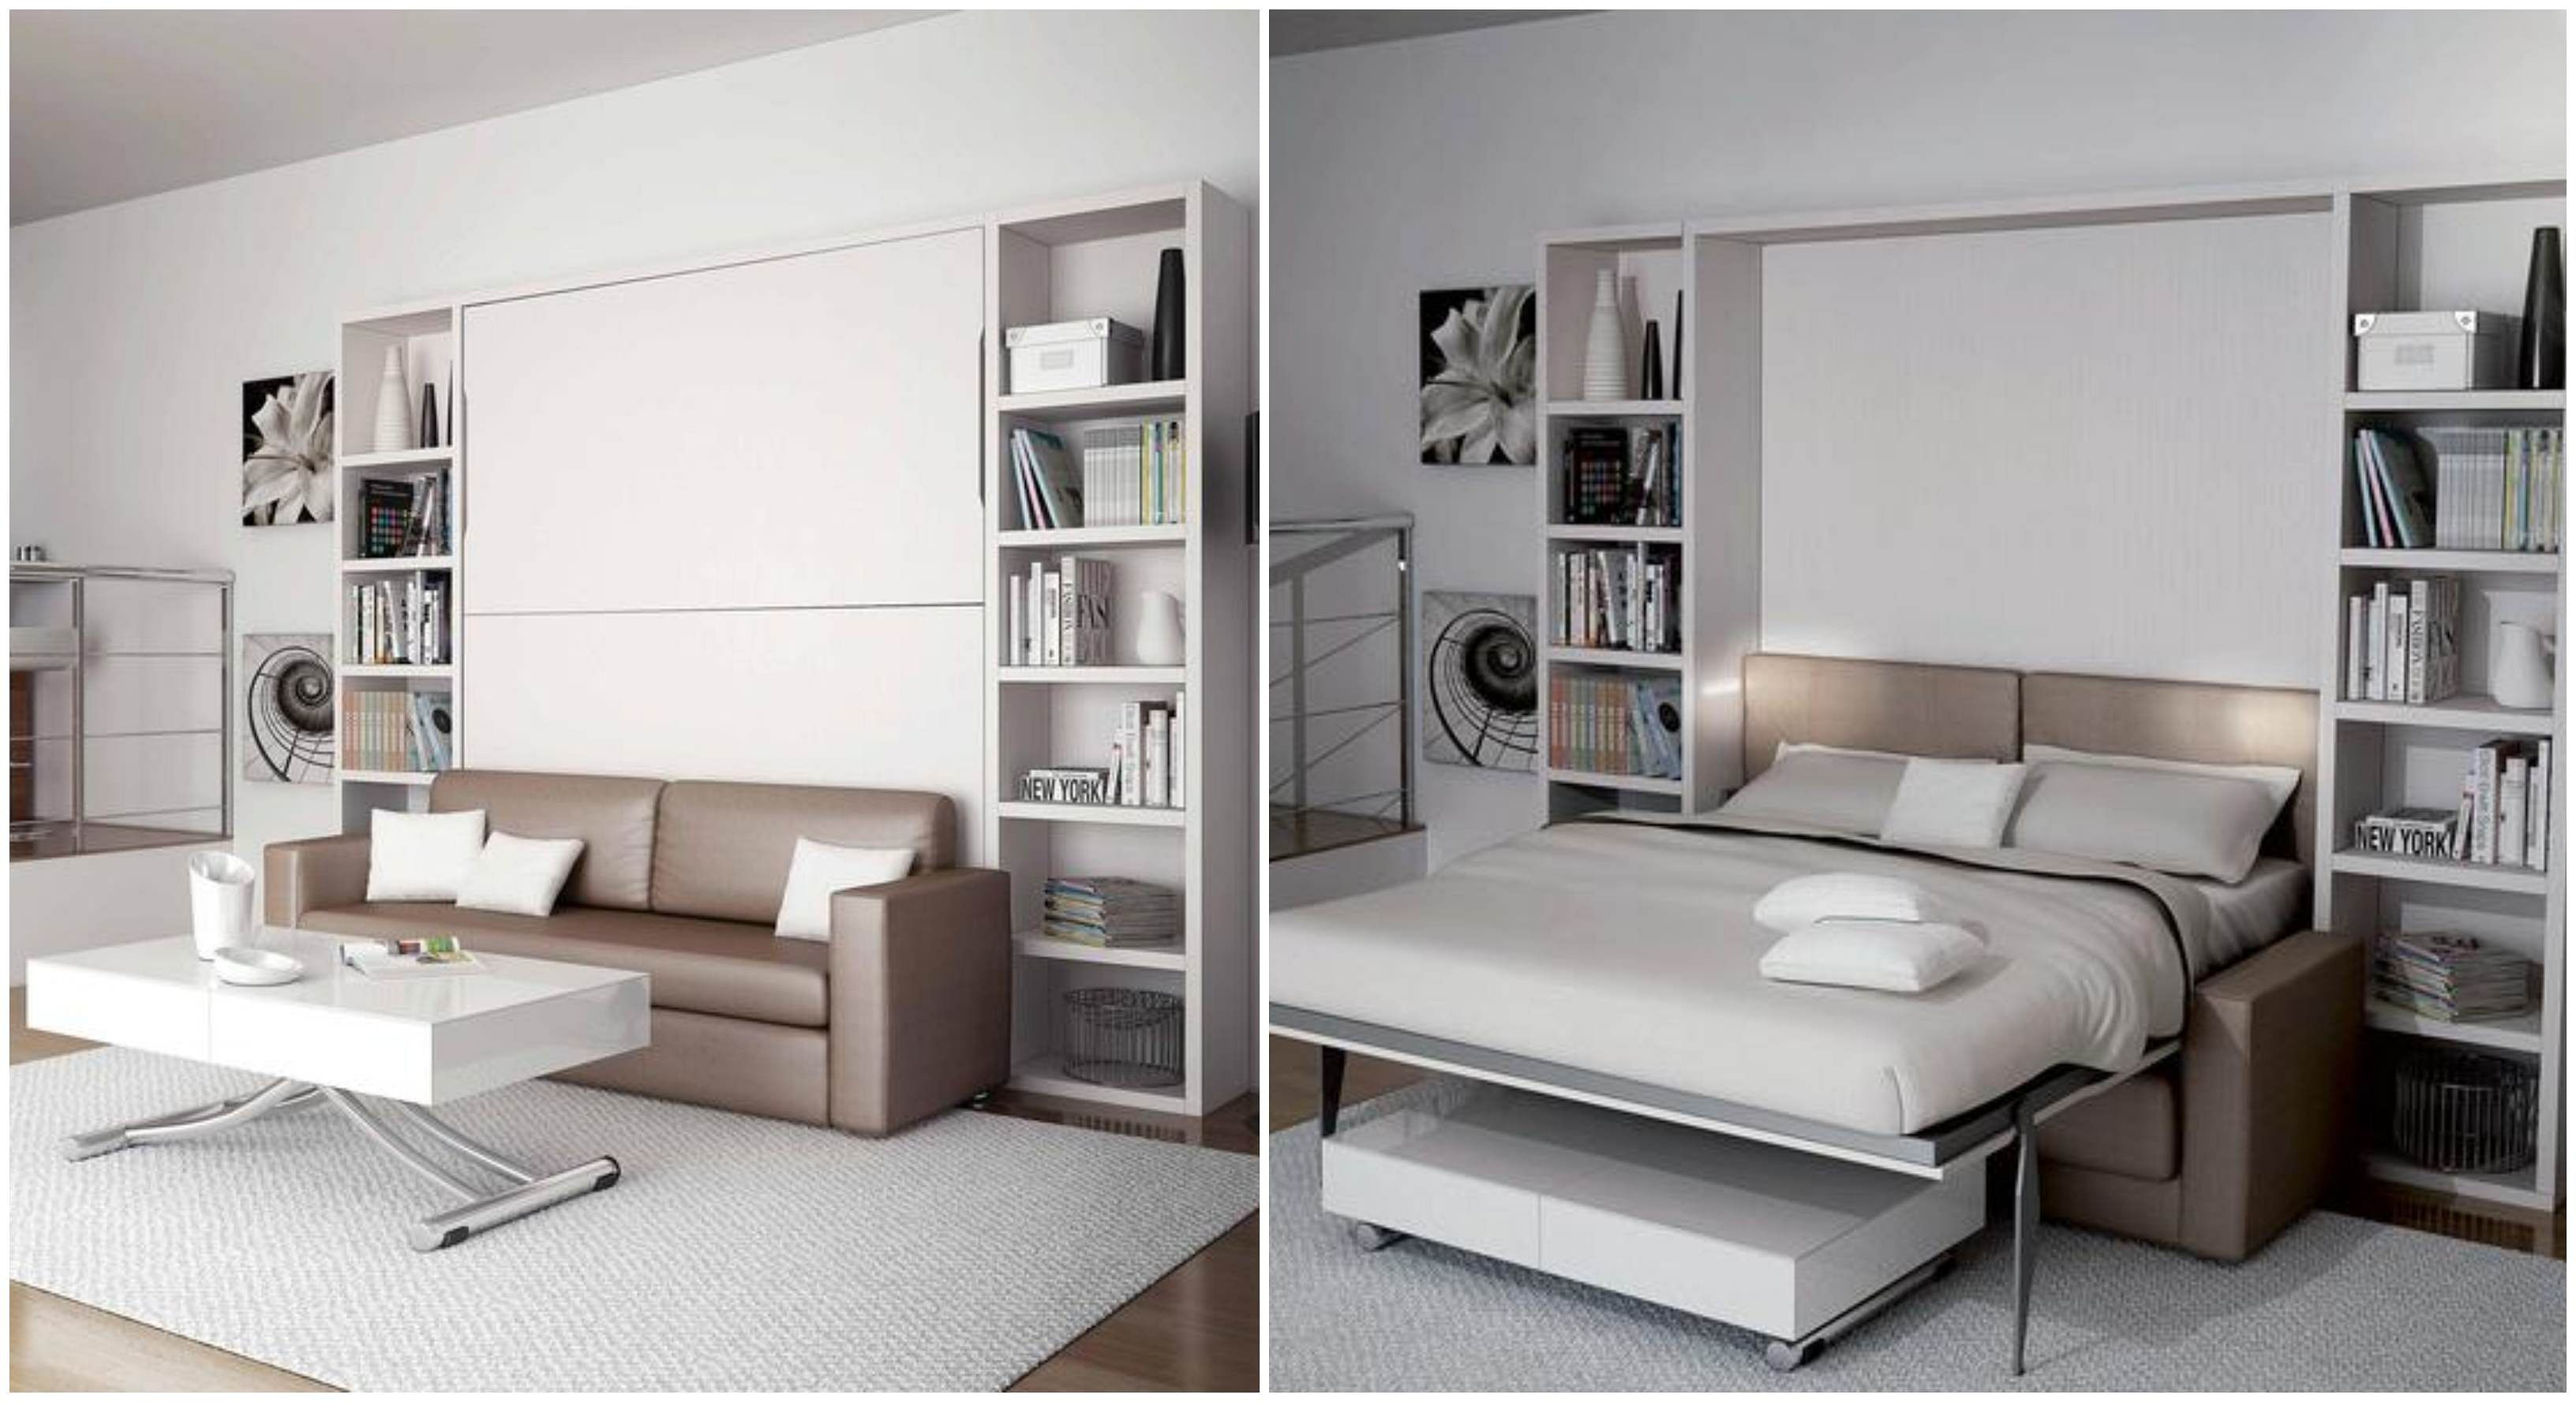 8 Space Saving Furniture To Buy In Singapore Home Decor Singapore